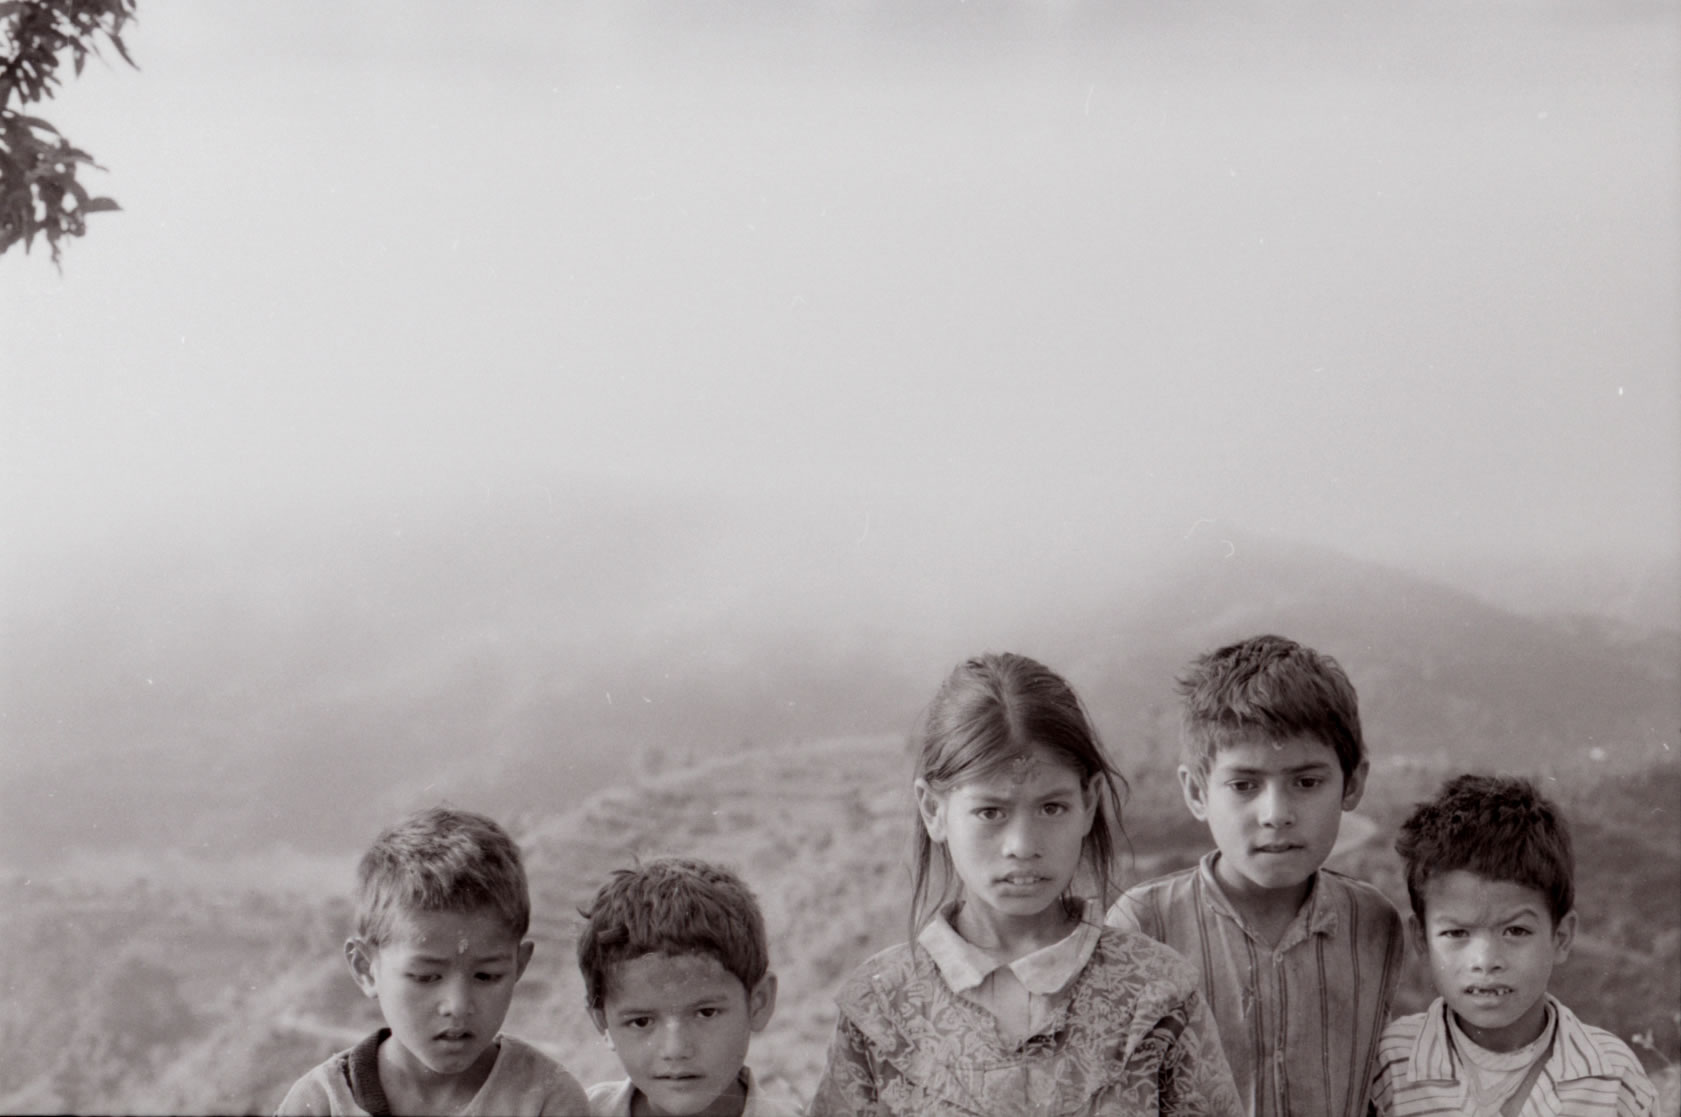 CHILDREN IN THE HIMALAYAS KALI TEMPLE